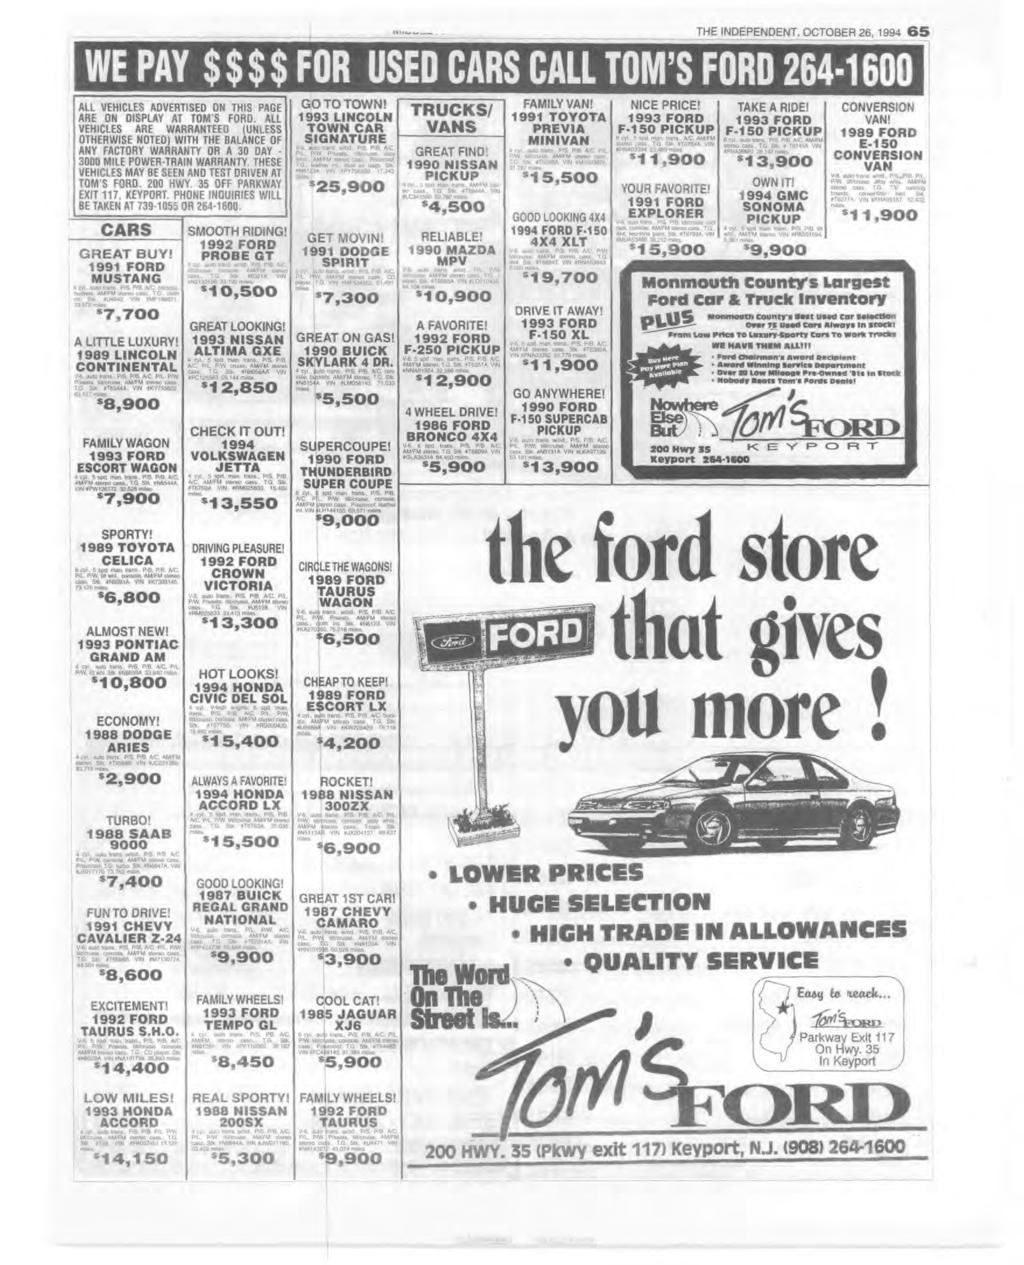 THE NDEPENDENT, OCTOBER 26, 1994 6 5 W E PAY $ $ $ $ FOR U SED C A R S C A LL TOM S FORD 2 6 4 ALL VEHCLES ADVERTSED ON THS PAGE ARE ON DSPLAY AT TOM S FORD, ALL VEHCLES ARE WARRANTEED (UNLESS